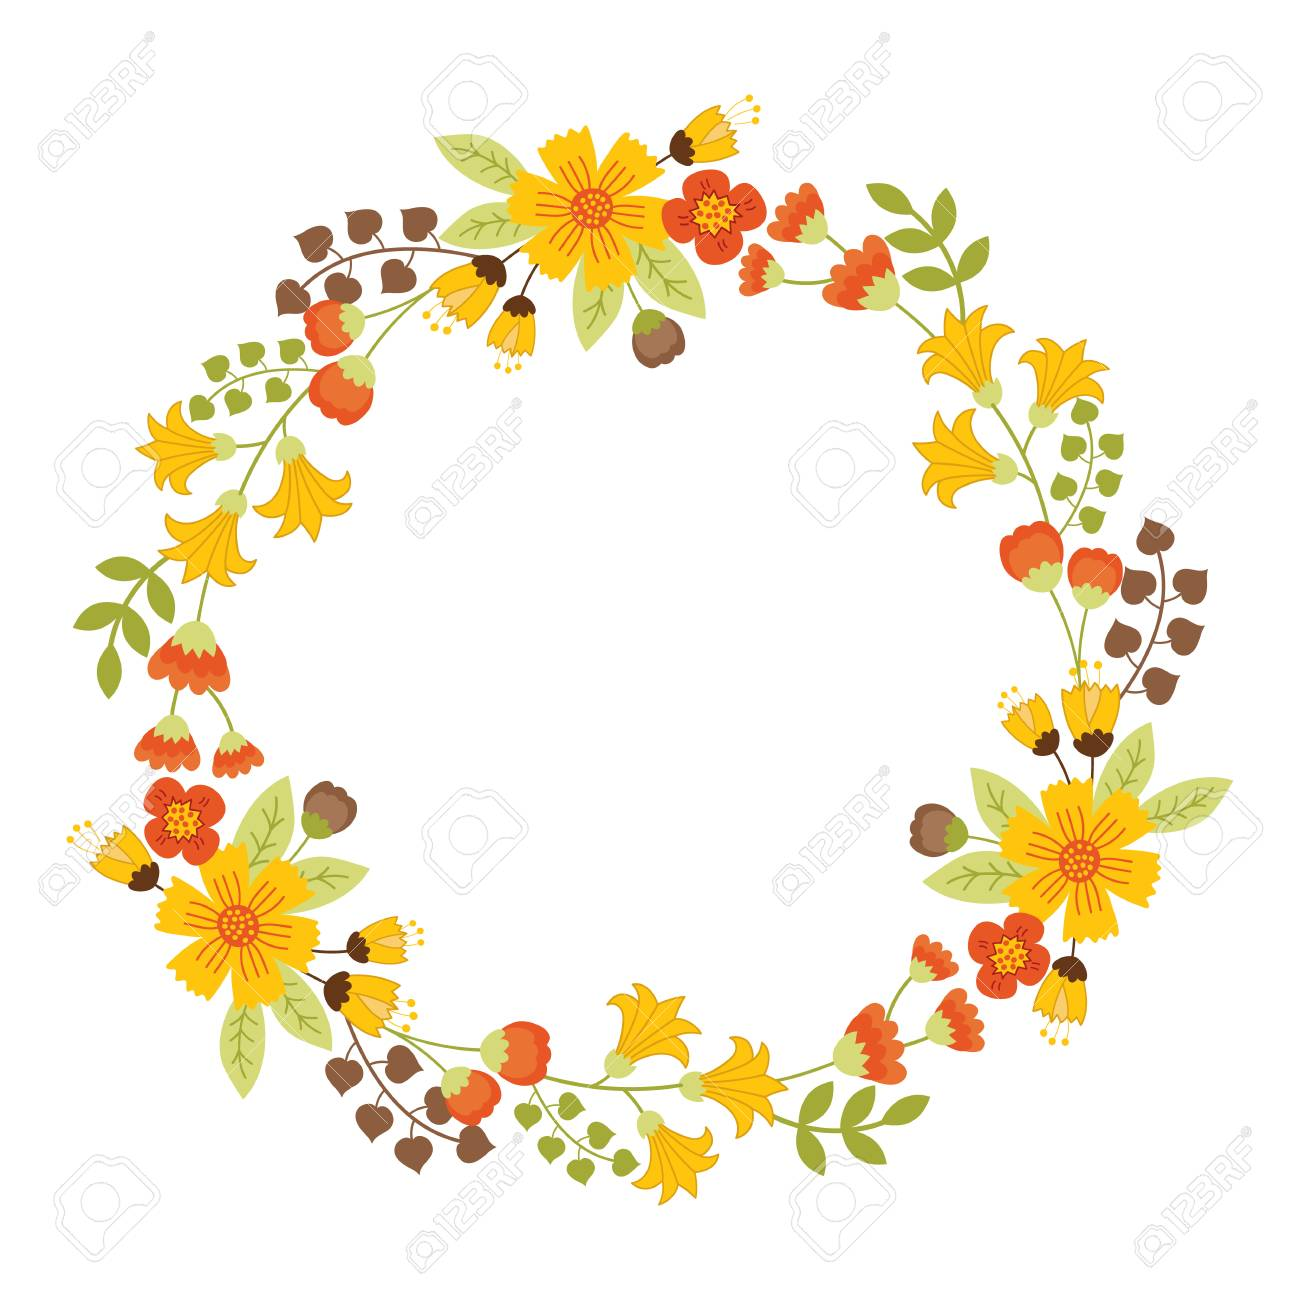 Autumn Floral Wreath With Yellow Flowers Green And Brown Leaves